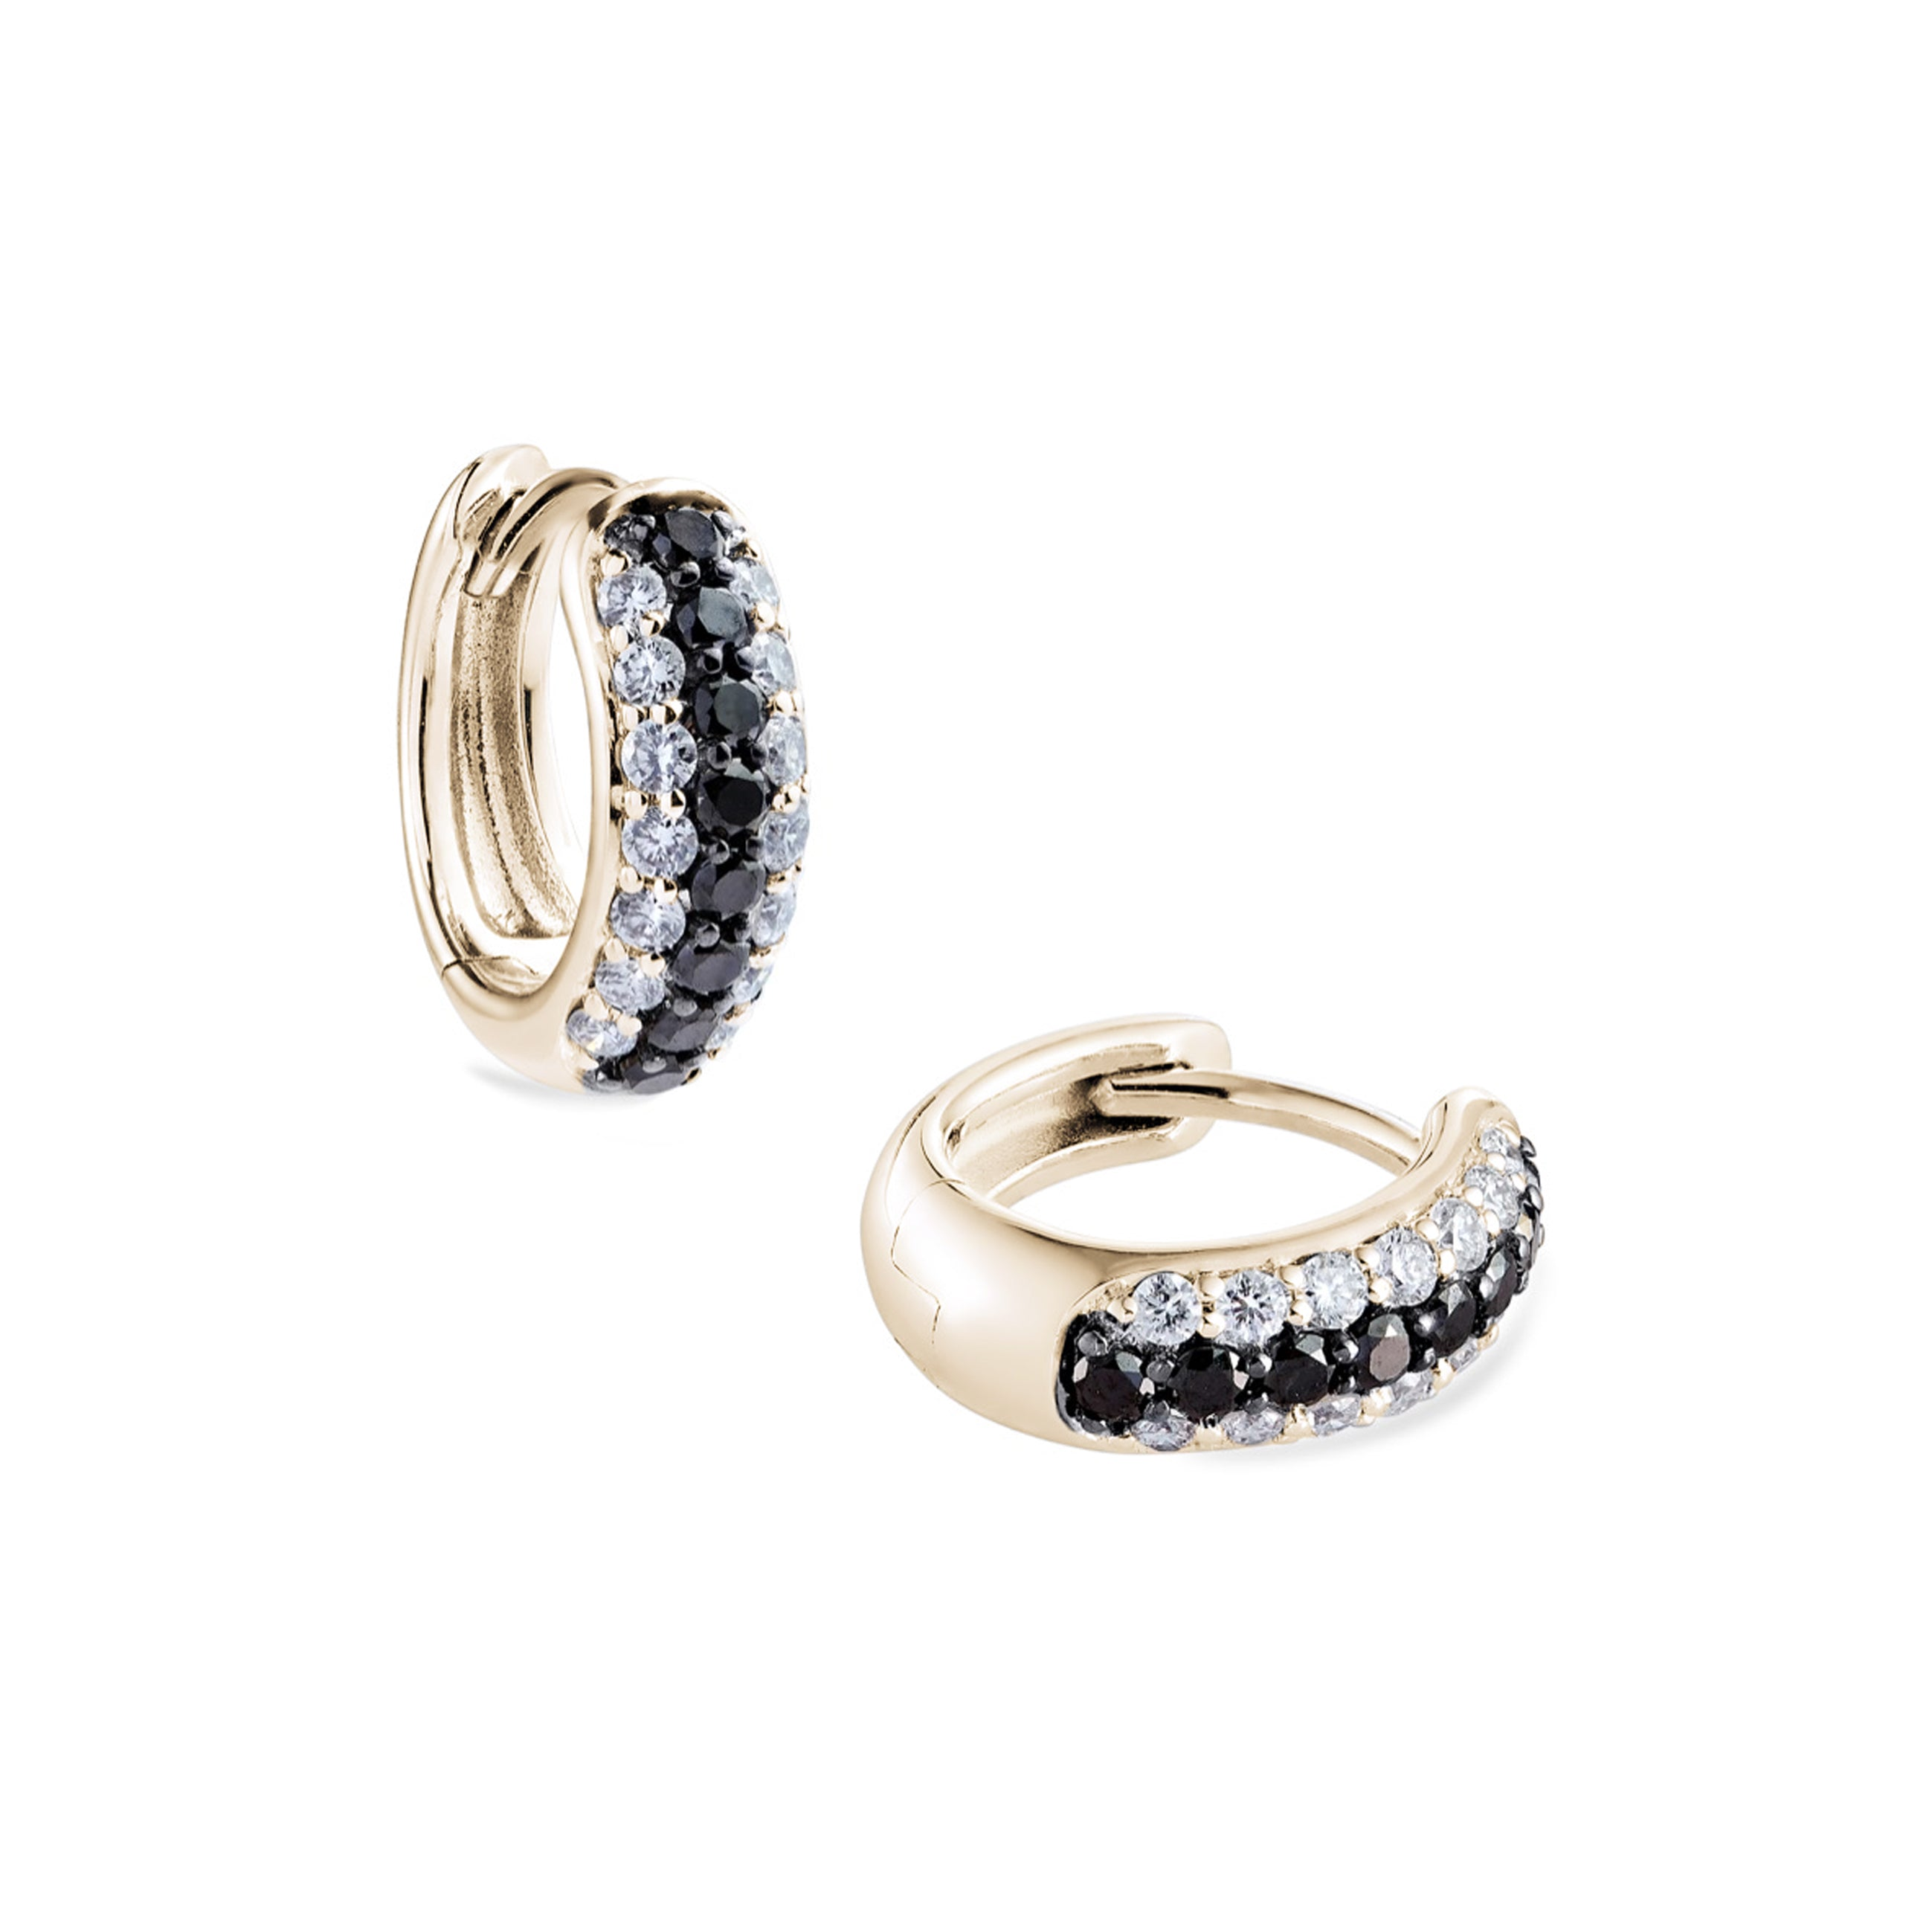 3-row pavé white & black diamond Gemopoli Huggies yellow gold